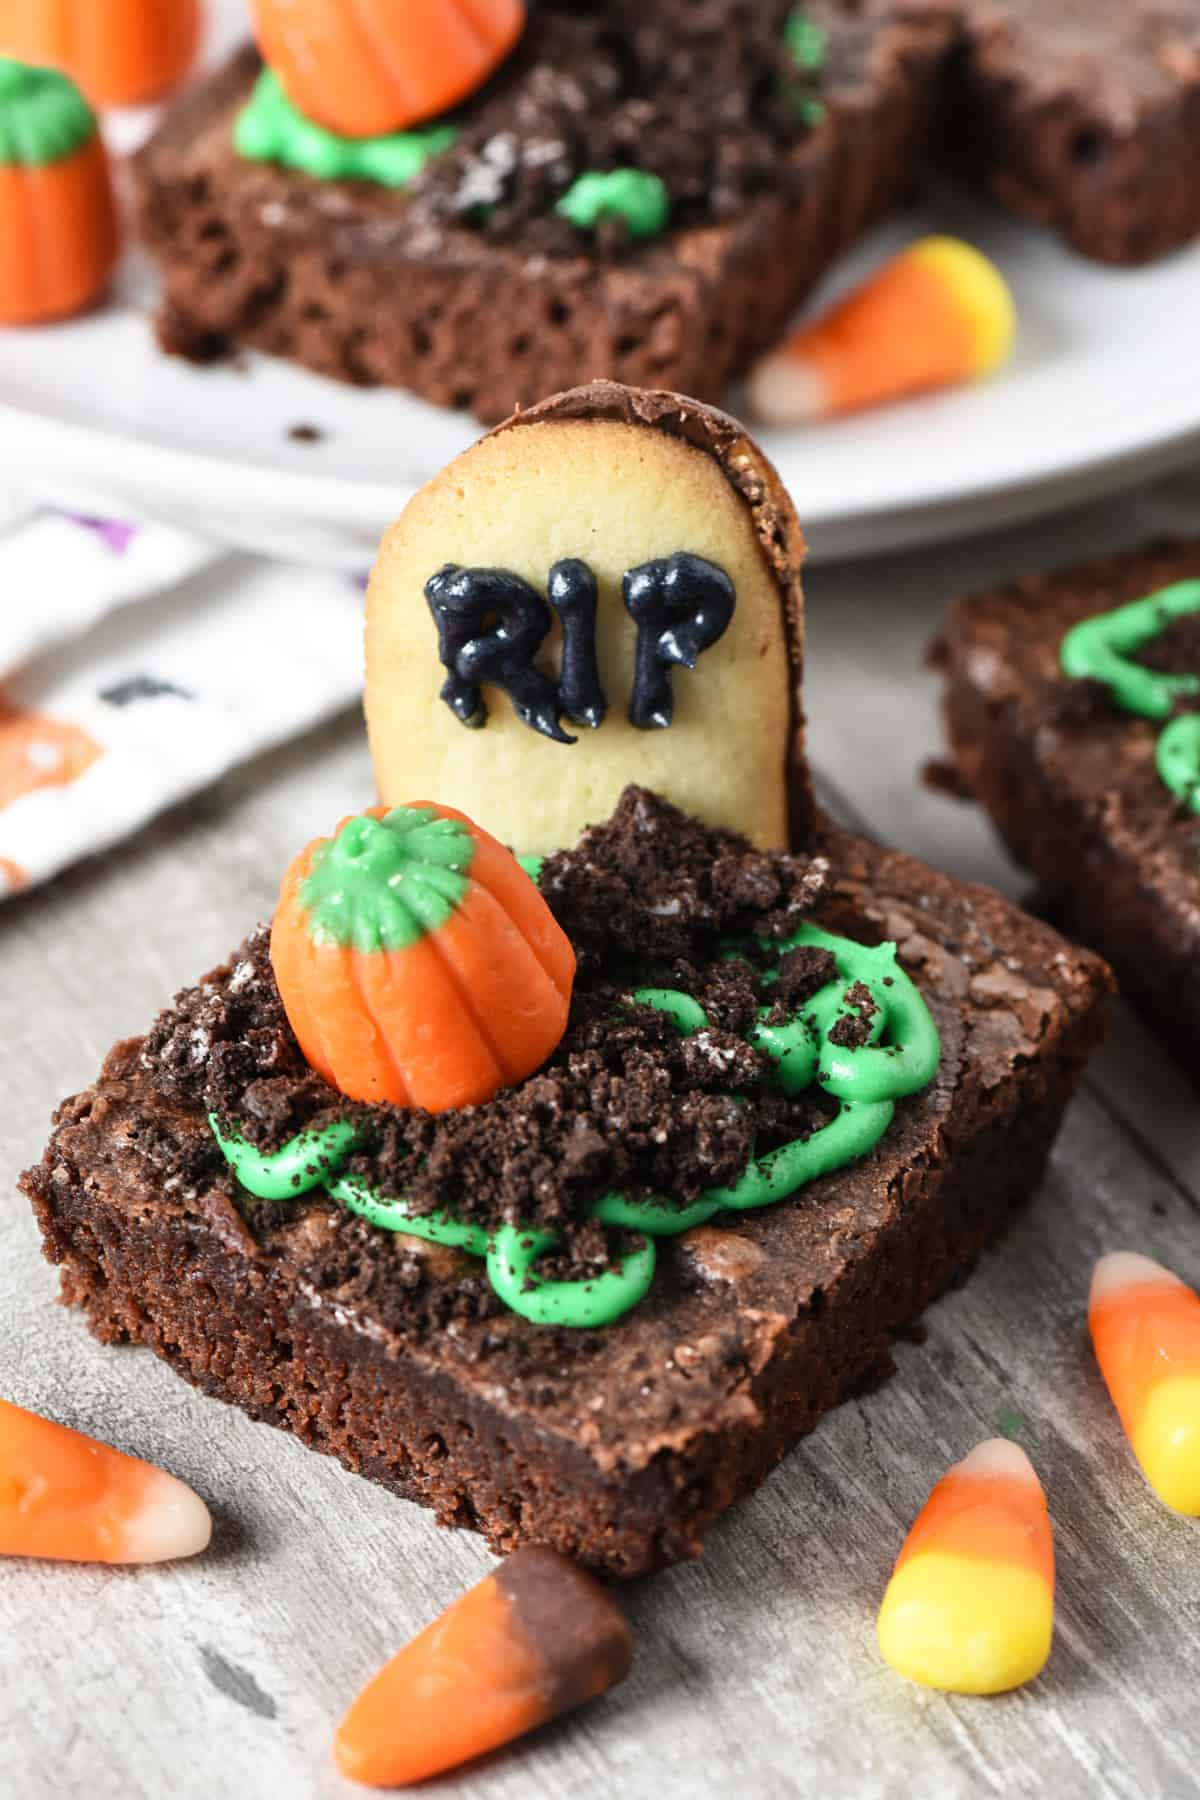 spooky graveyard brownies with Milano Cookies as gravestones, Oreos as dirt, green icing, and candy pumpkins